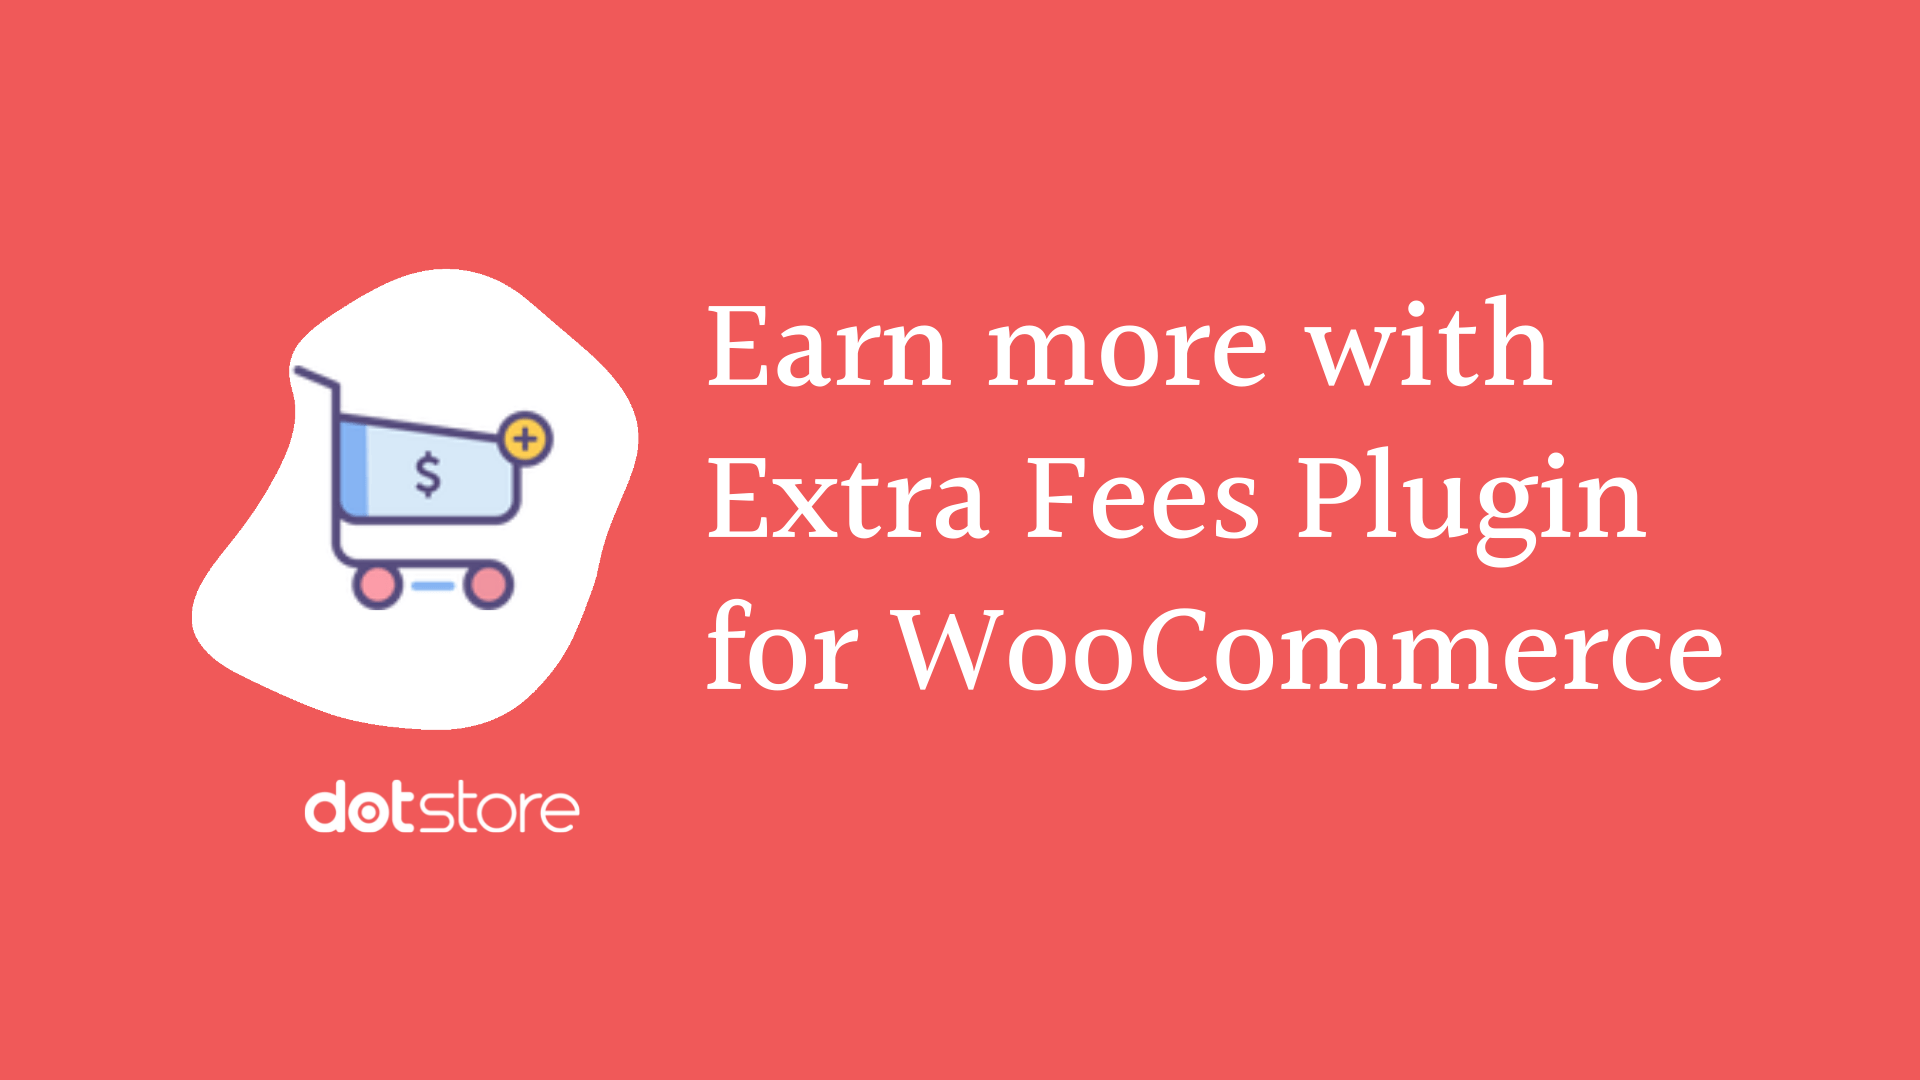 6 Ways to Earn Extra from your WooCommerce Store without much effort